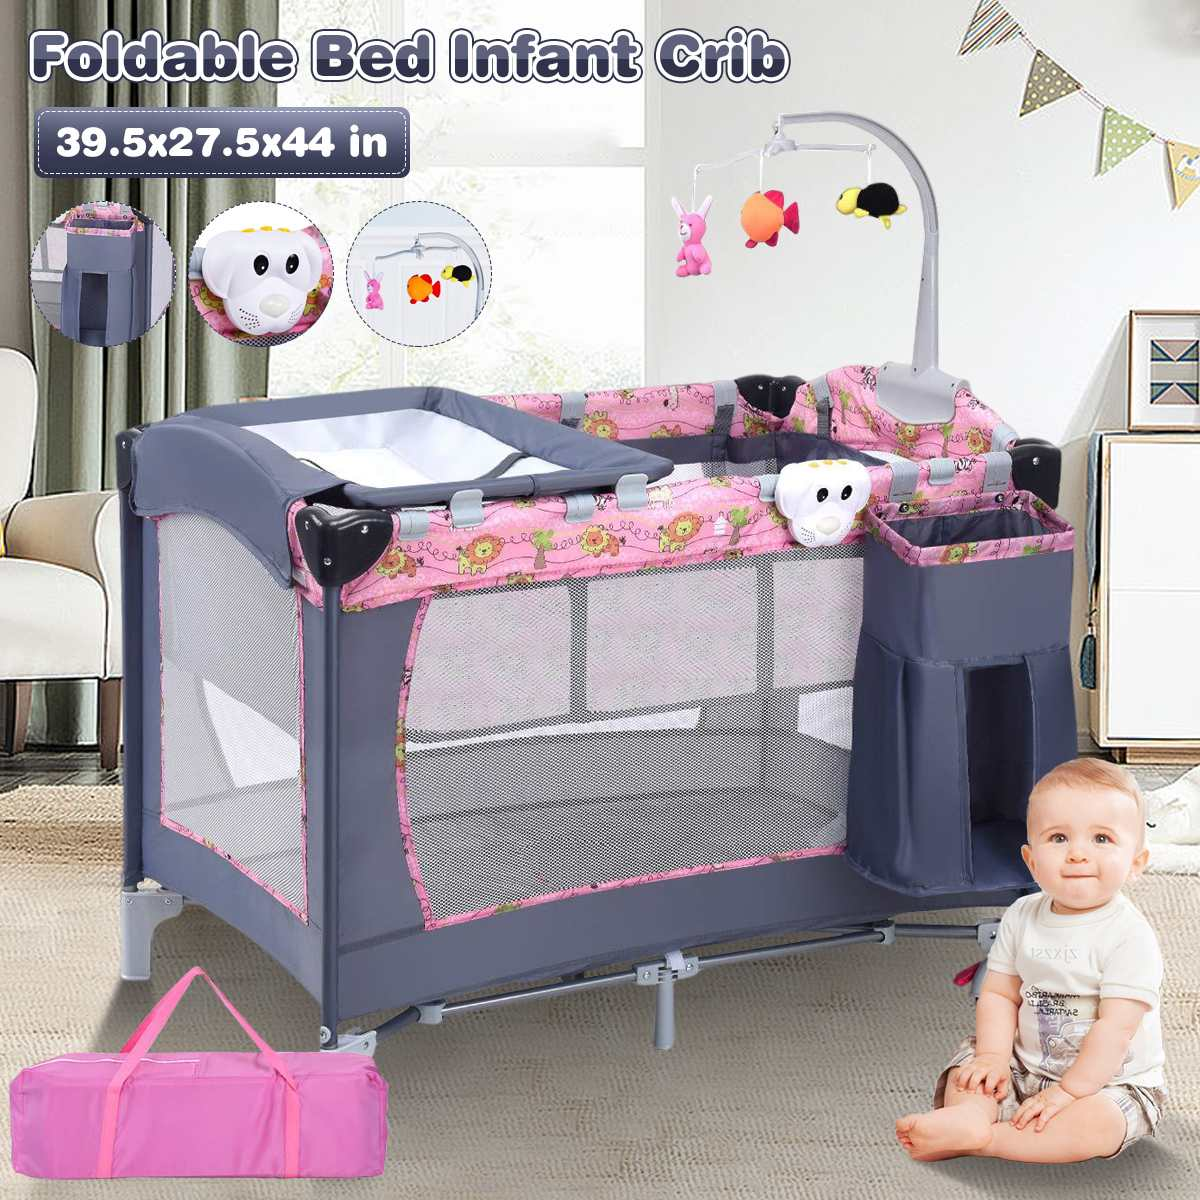 39.5x27.5x44 in Baby Playpen Crib Toddler Children's Bed Foldable Travel With Diaper Nursery Table Cradle Rocker Kid Game